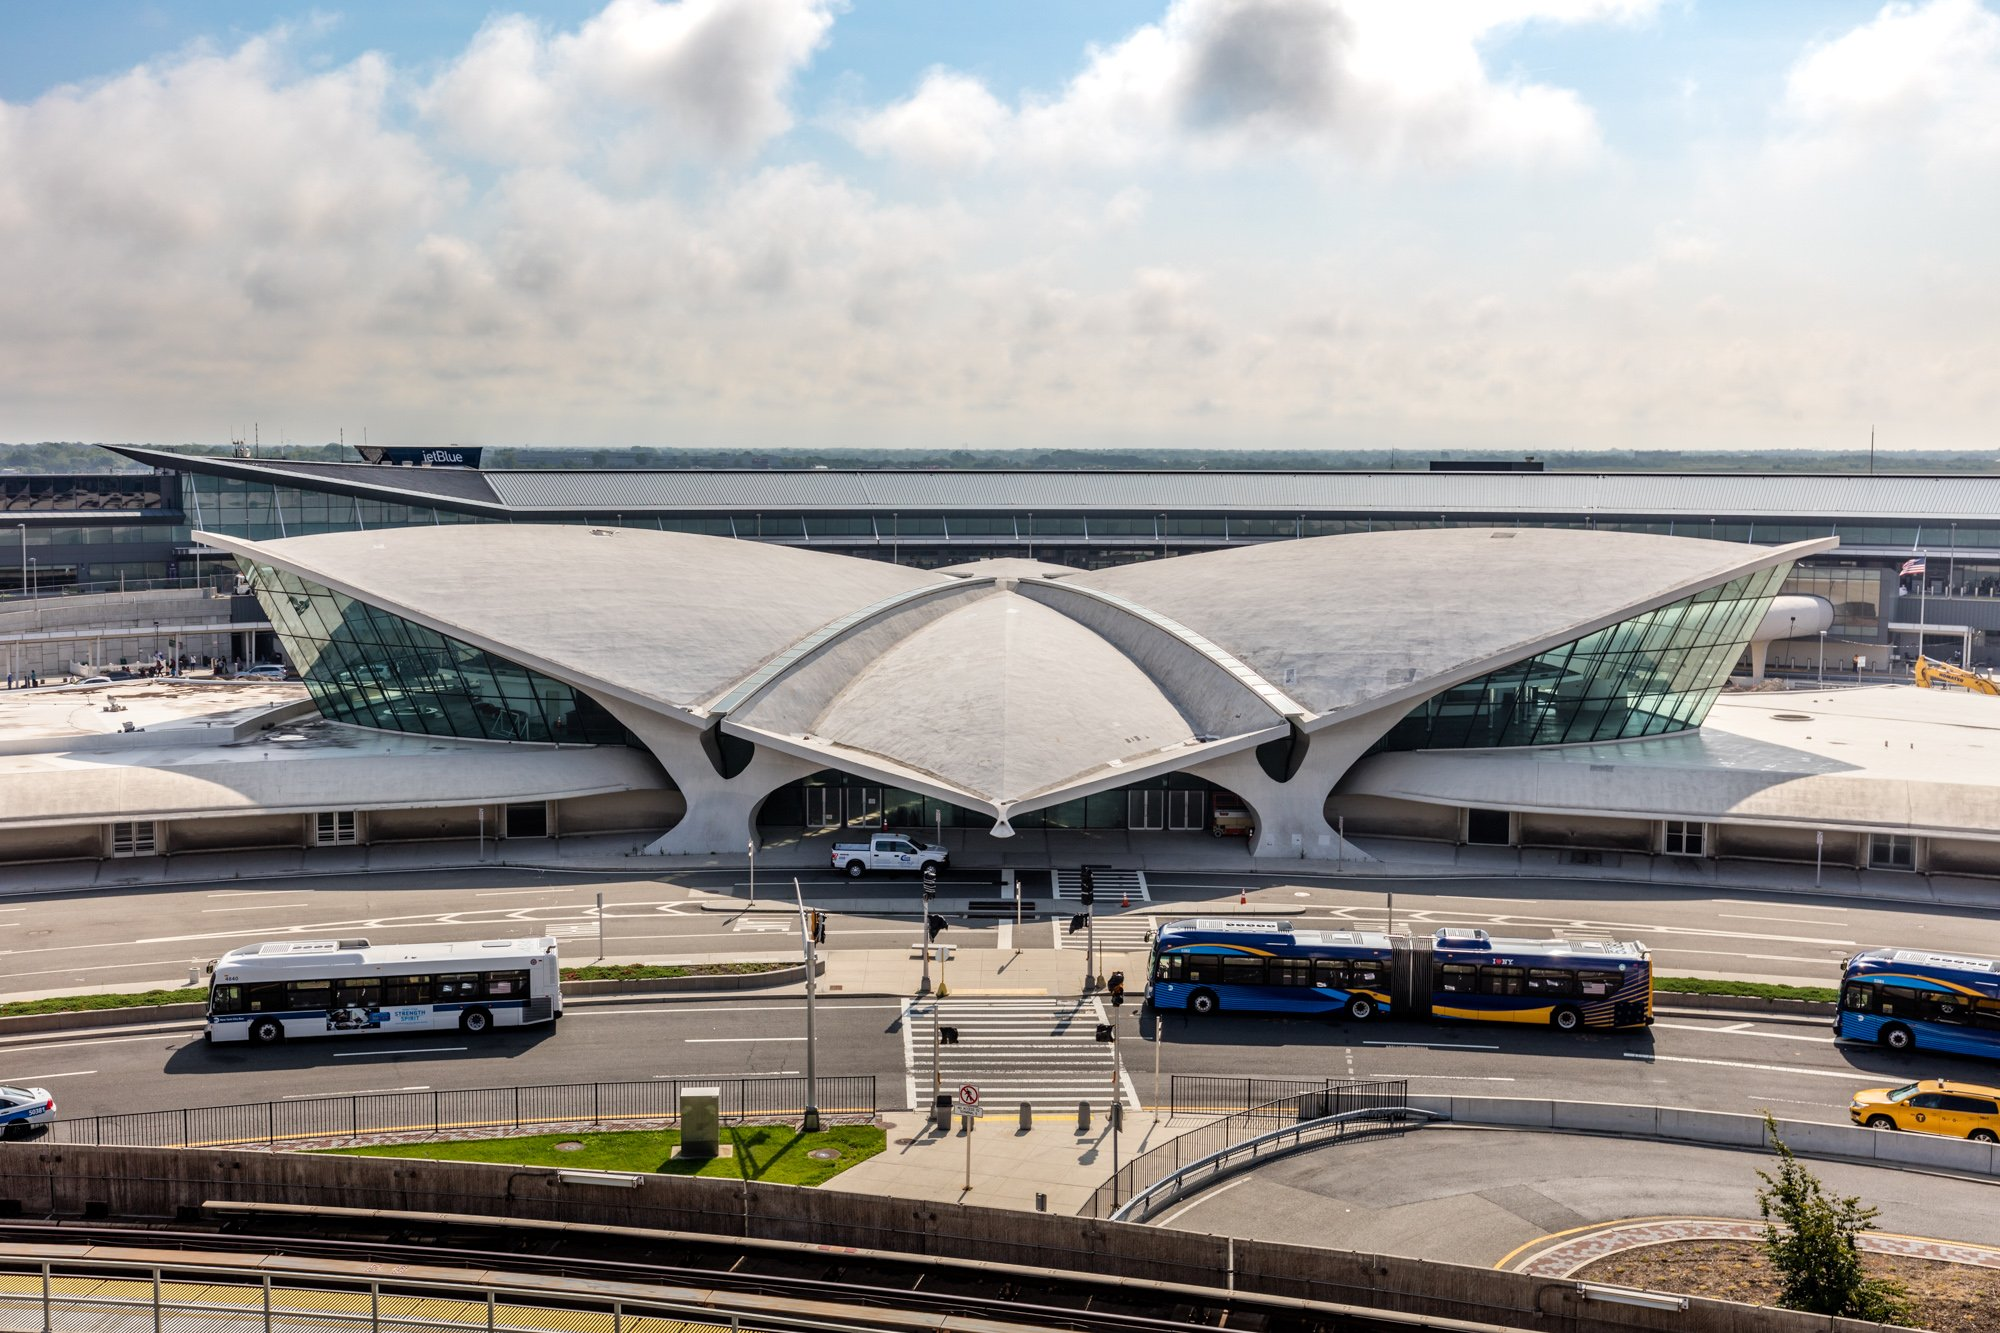 The original TWA Flight Center closed in 2001, and was abandoned for 15 years.